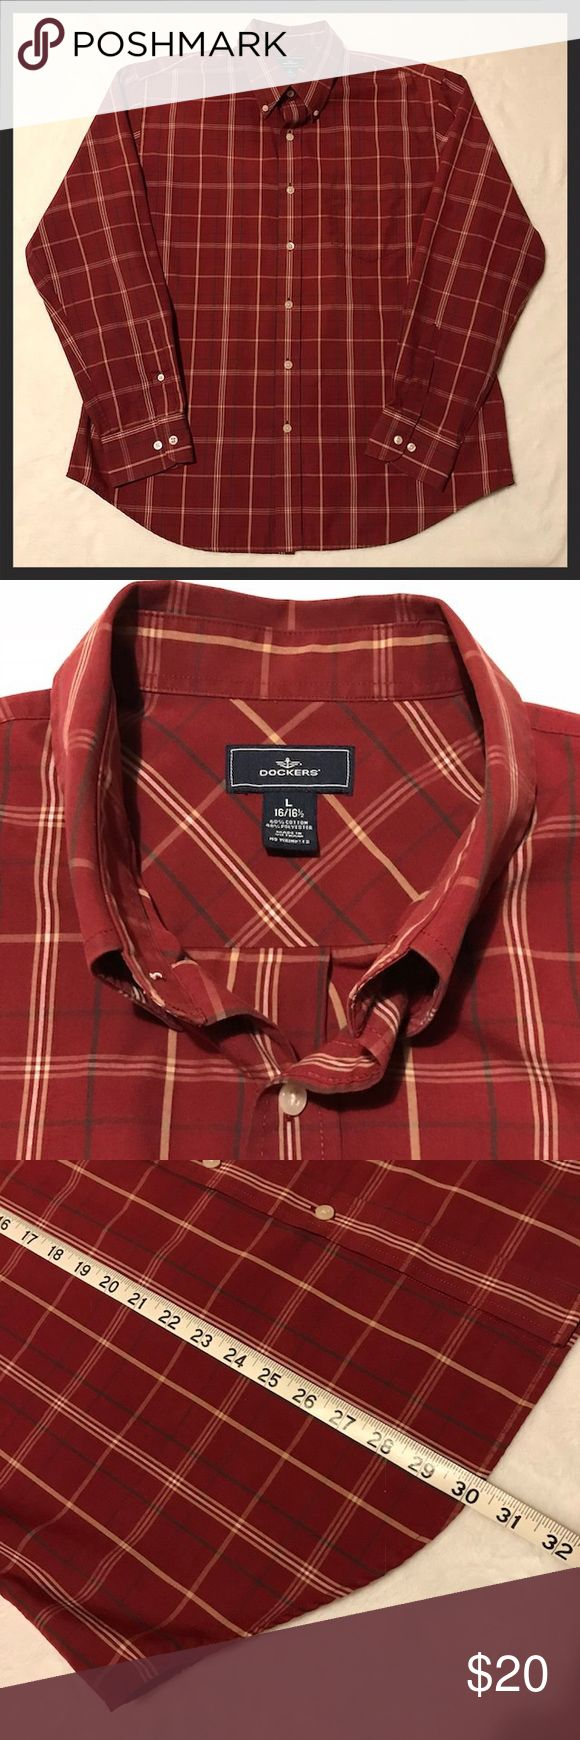 """HPMen's Dockers Long Sleeve Dress Shirt Host PickMen's Dockers long sleeve button down dress shirt. Maroon/burgundy, beige, and green plaid. Size Large. Neck is 16-16 1/2, top of shoulder to longest part of hem is 30"""", sleeve length is approximately 25 1/2"""". Armpit to armpit is 25"""". Excellent condition! Dockers Shirts Dress Shirts"""